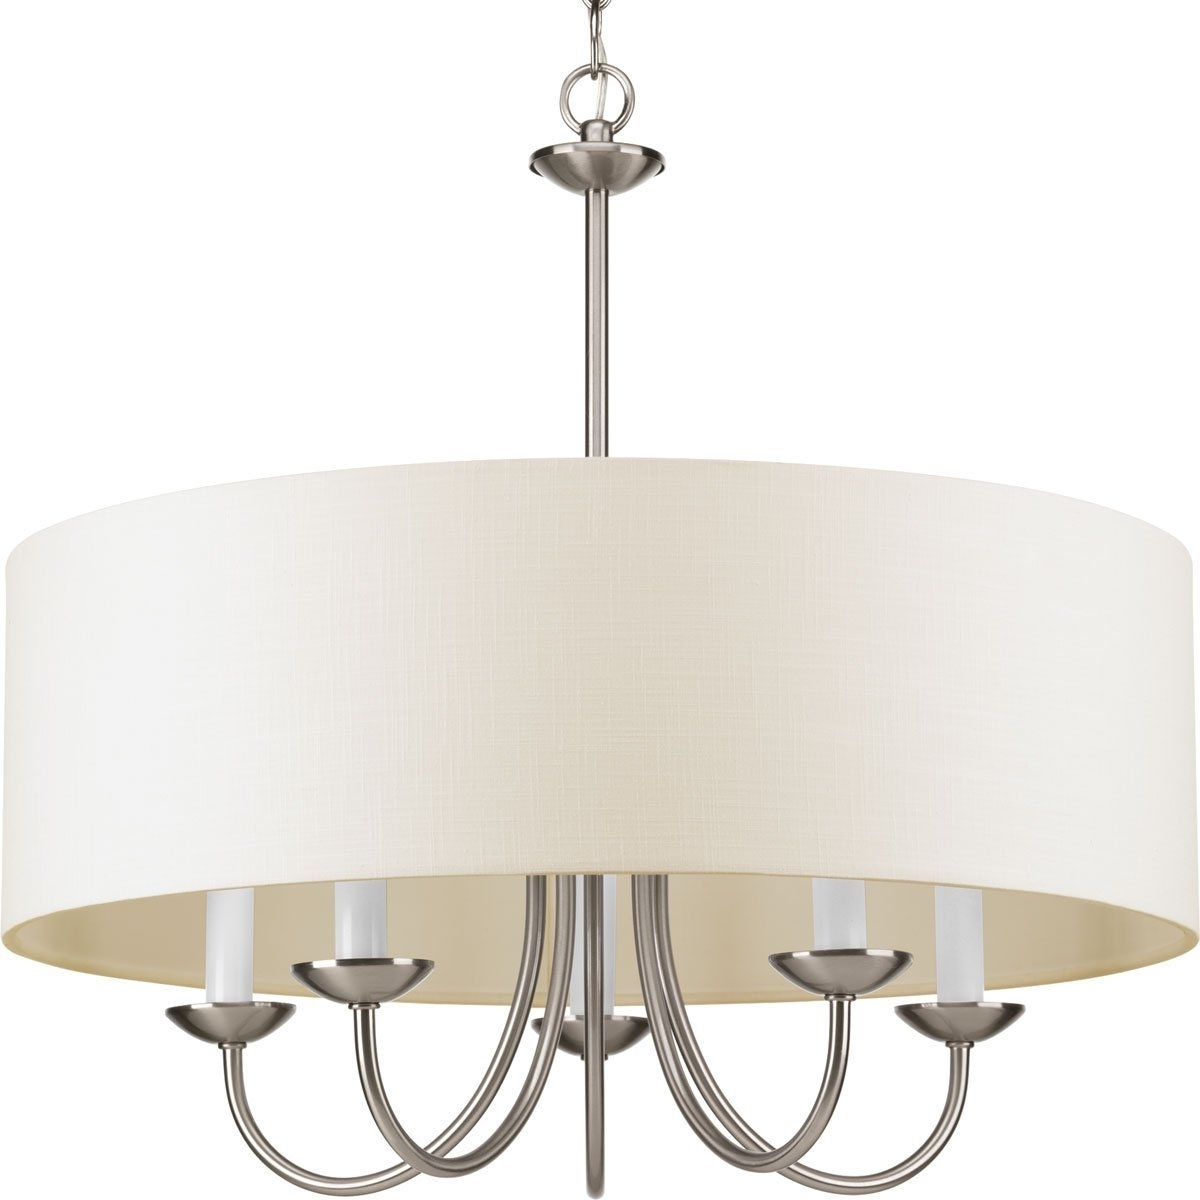 Preferred Drum Lamp Shades For Chandeliers With Progress Lighting P4217 09 5 Lt (View 10 of 15)